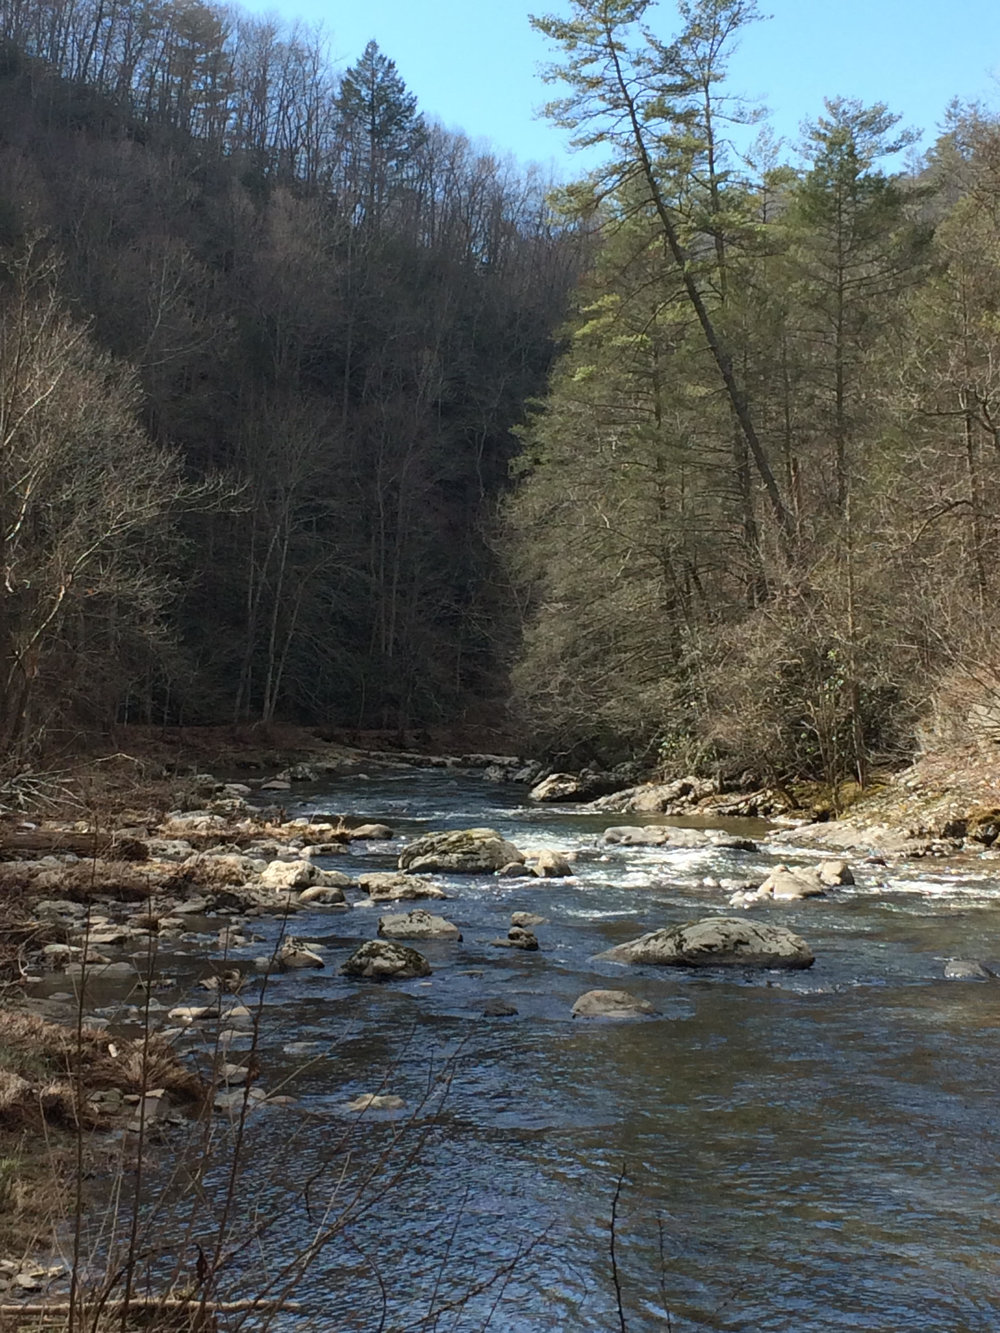 The Laurel River (near Hot Springs, NC)